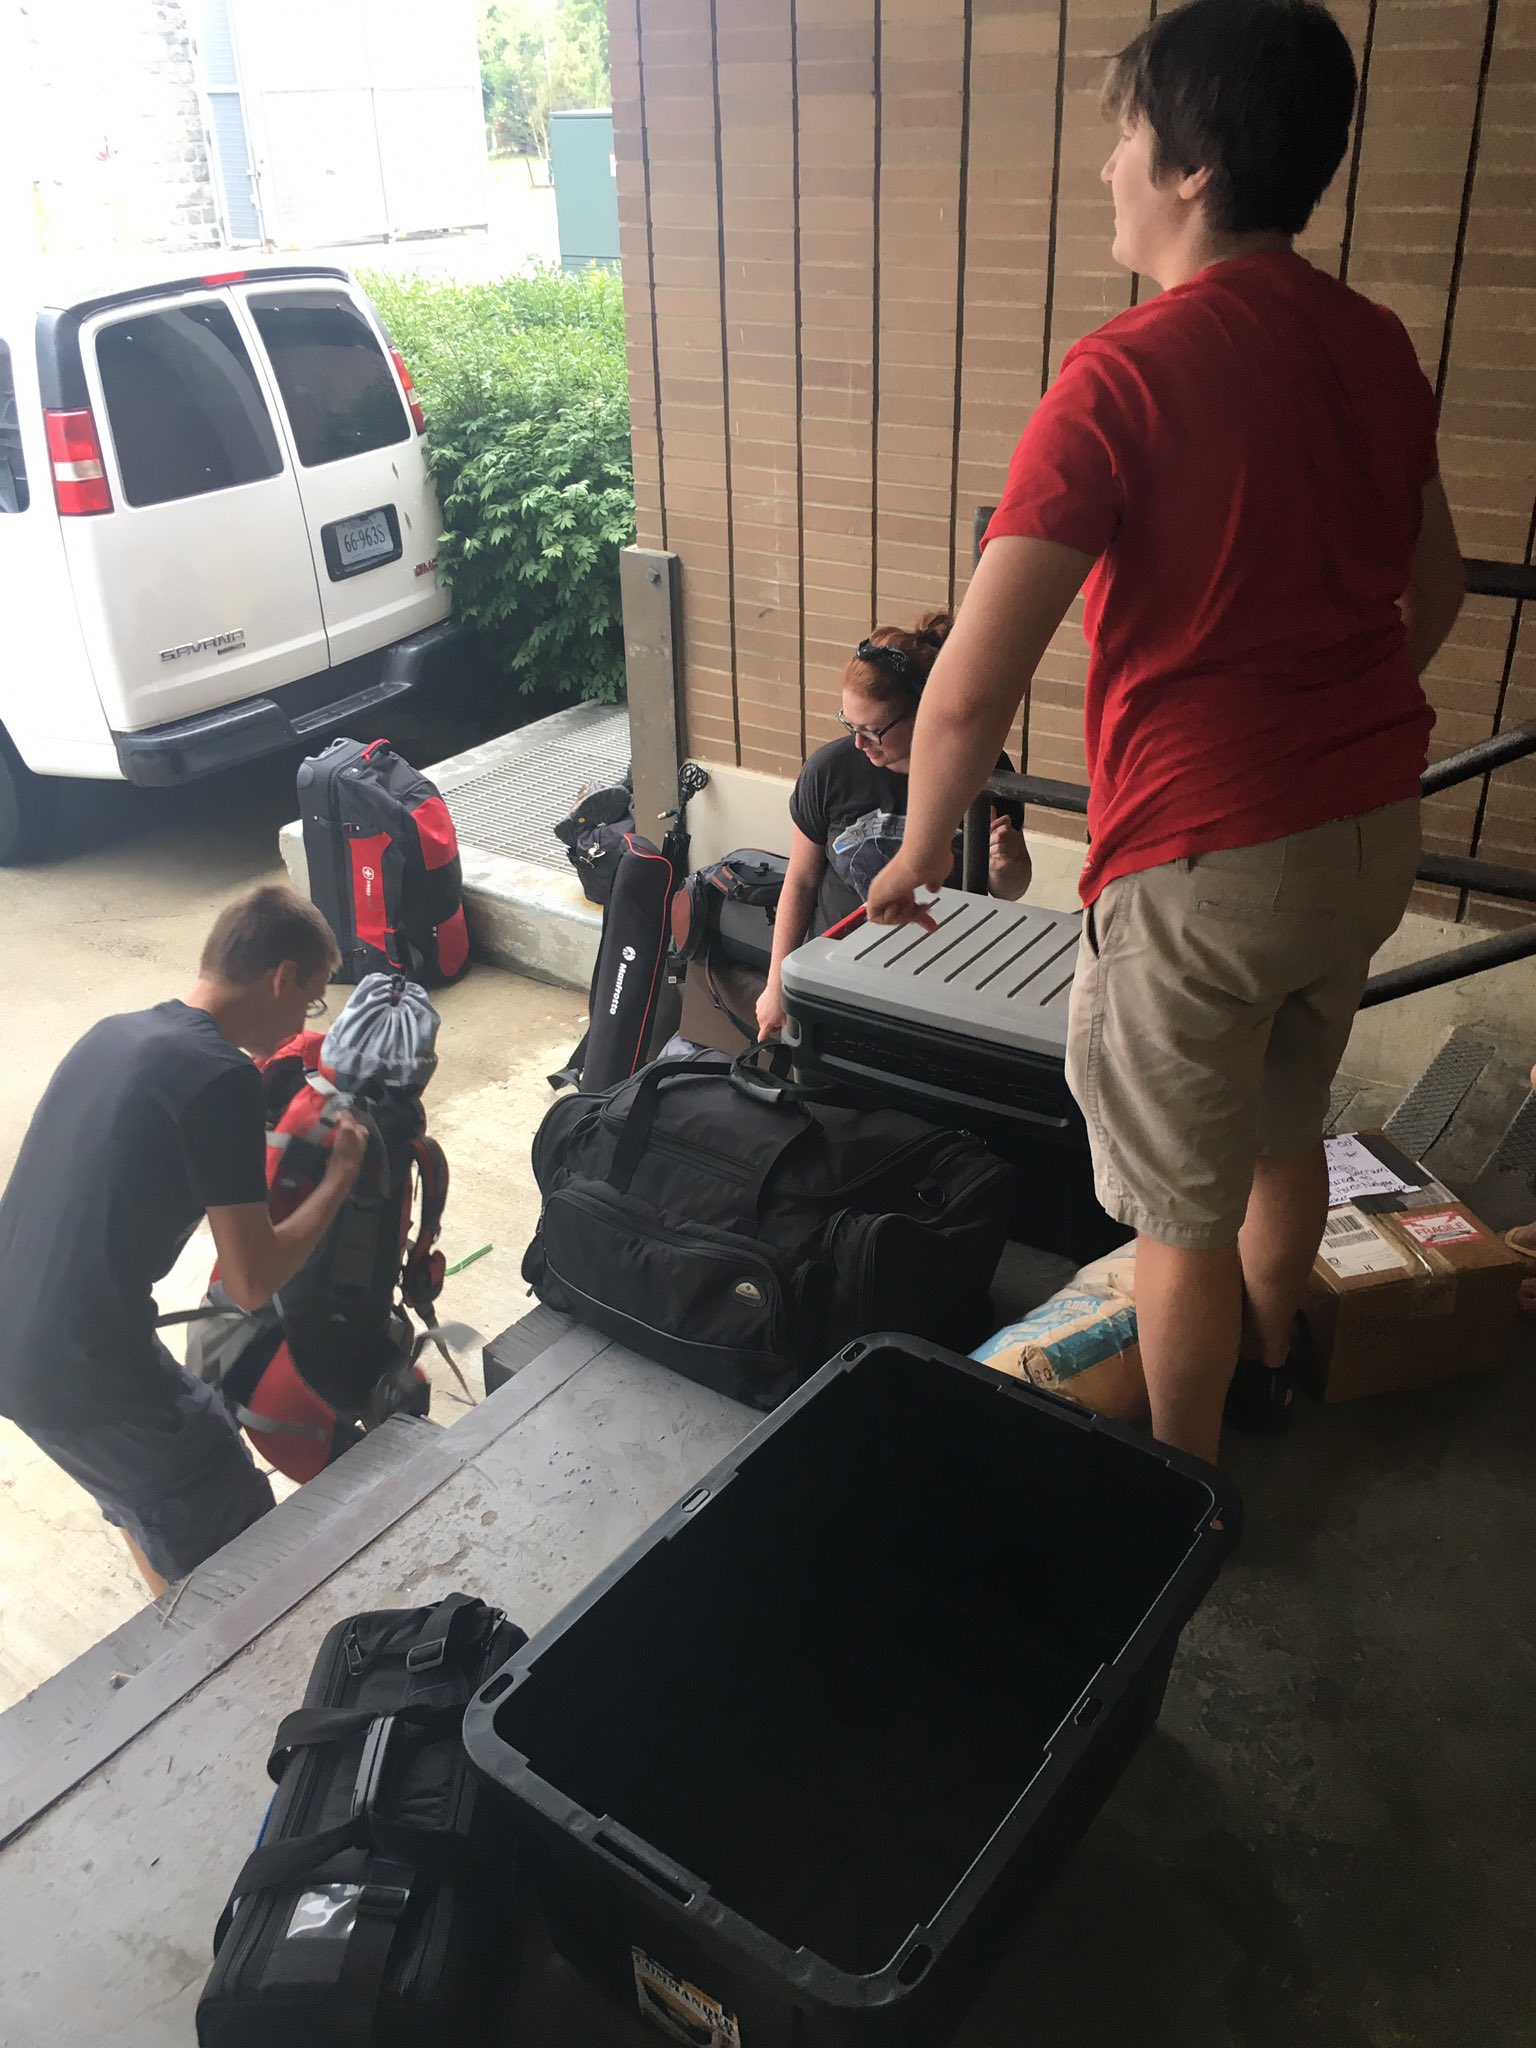 #tbt to...yesterday. Loading up! #VTTriassicFieldwork https://t.co/TDC8Wk4O5O